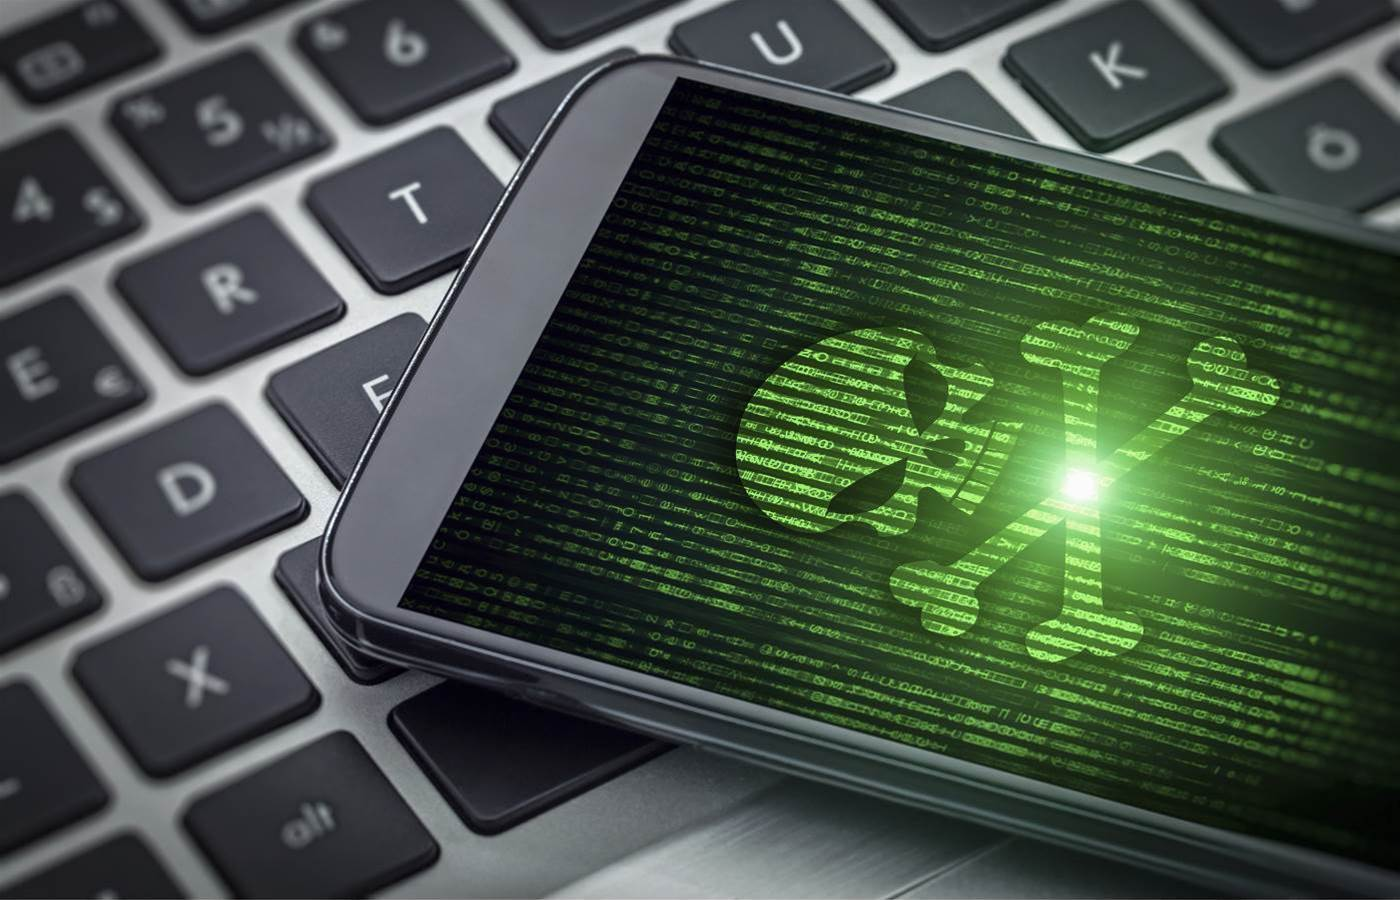 Android devices shipped with built-in malware